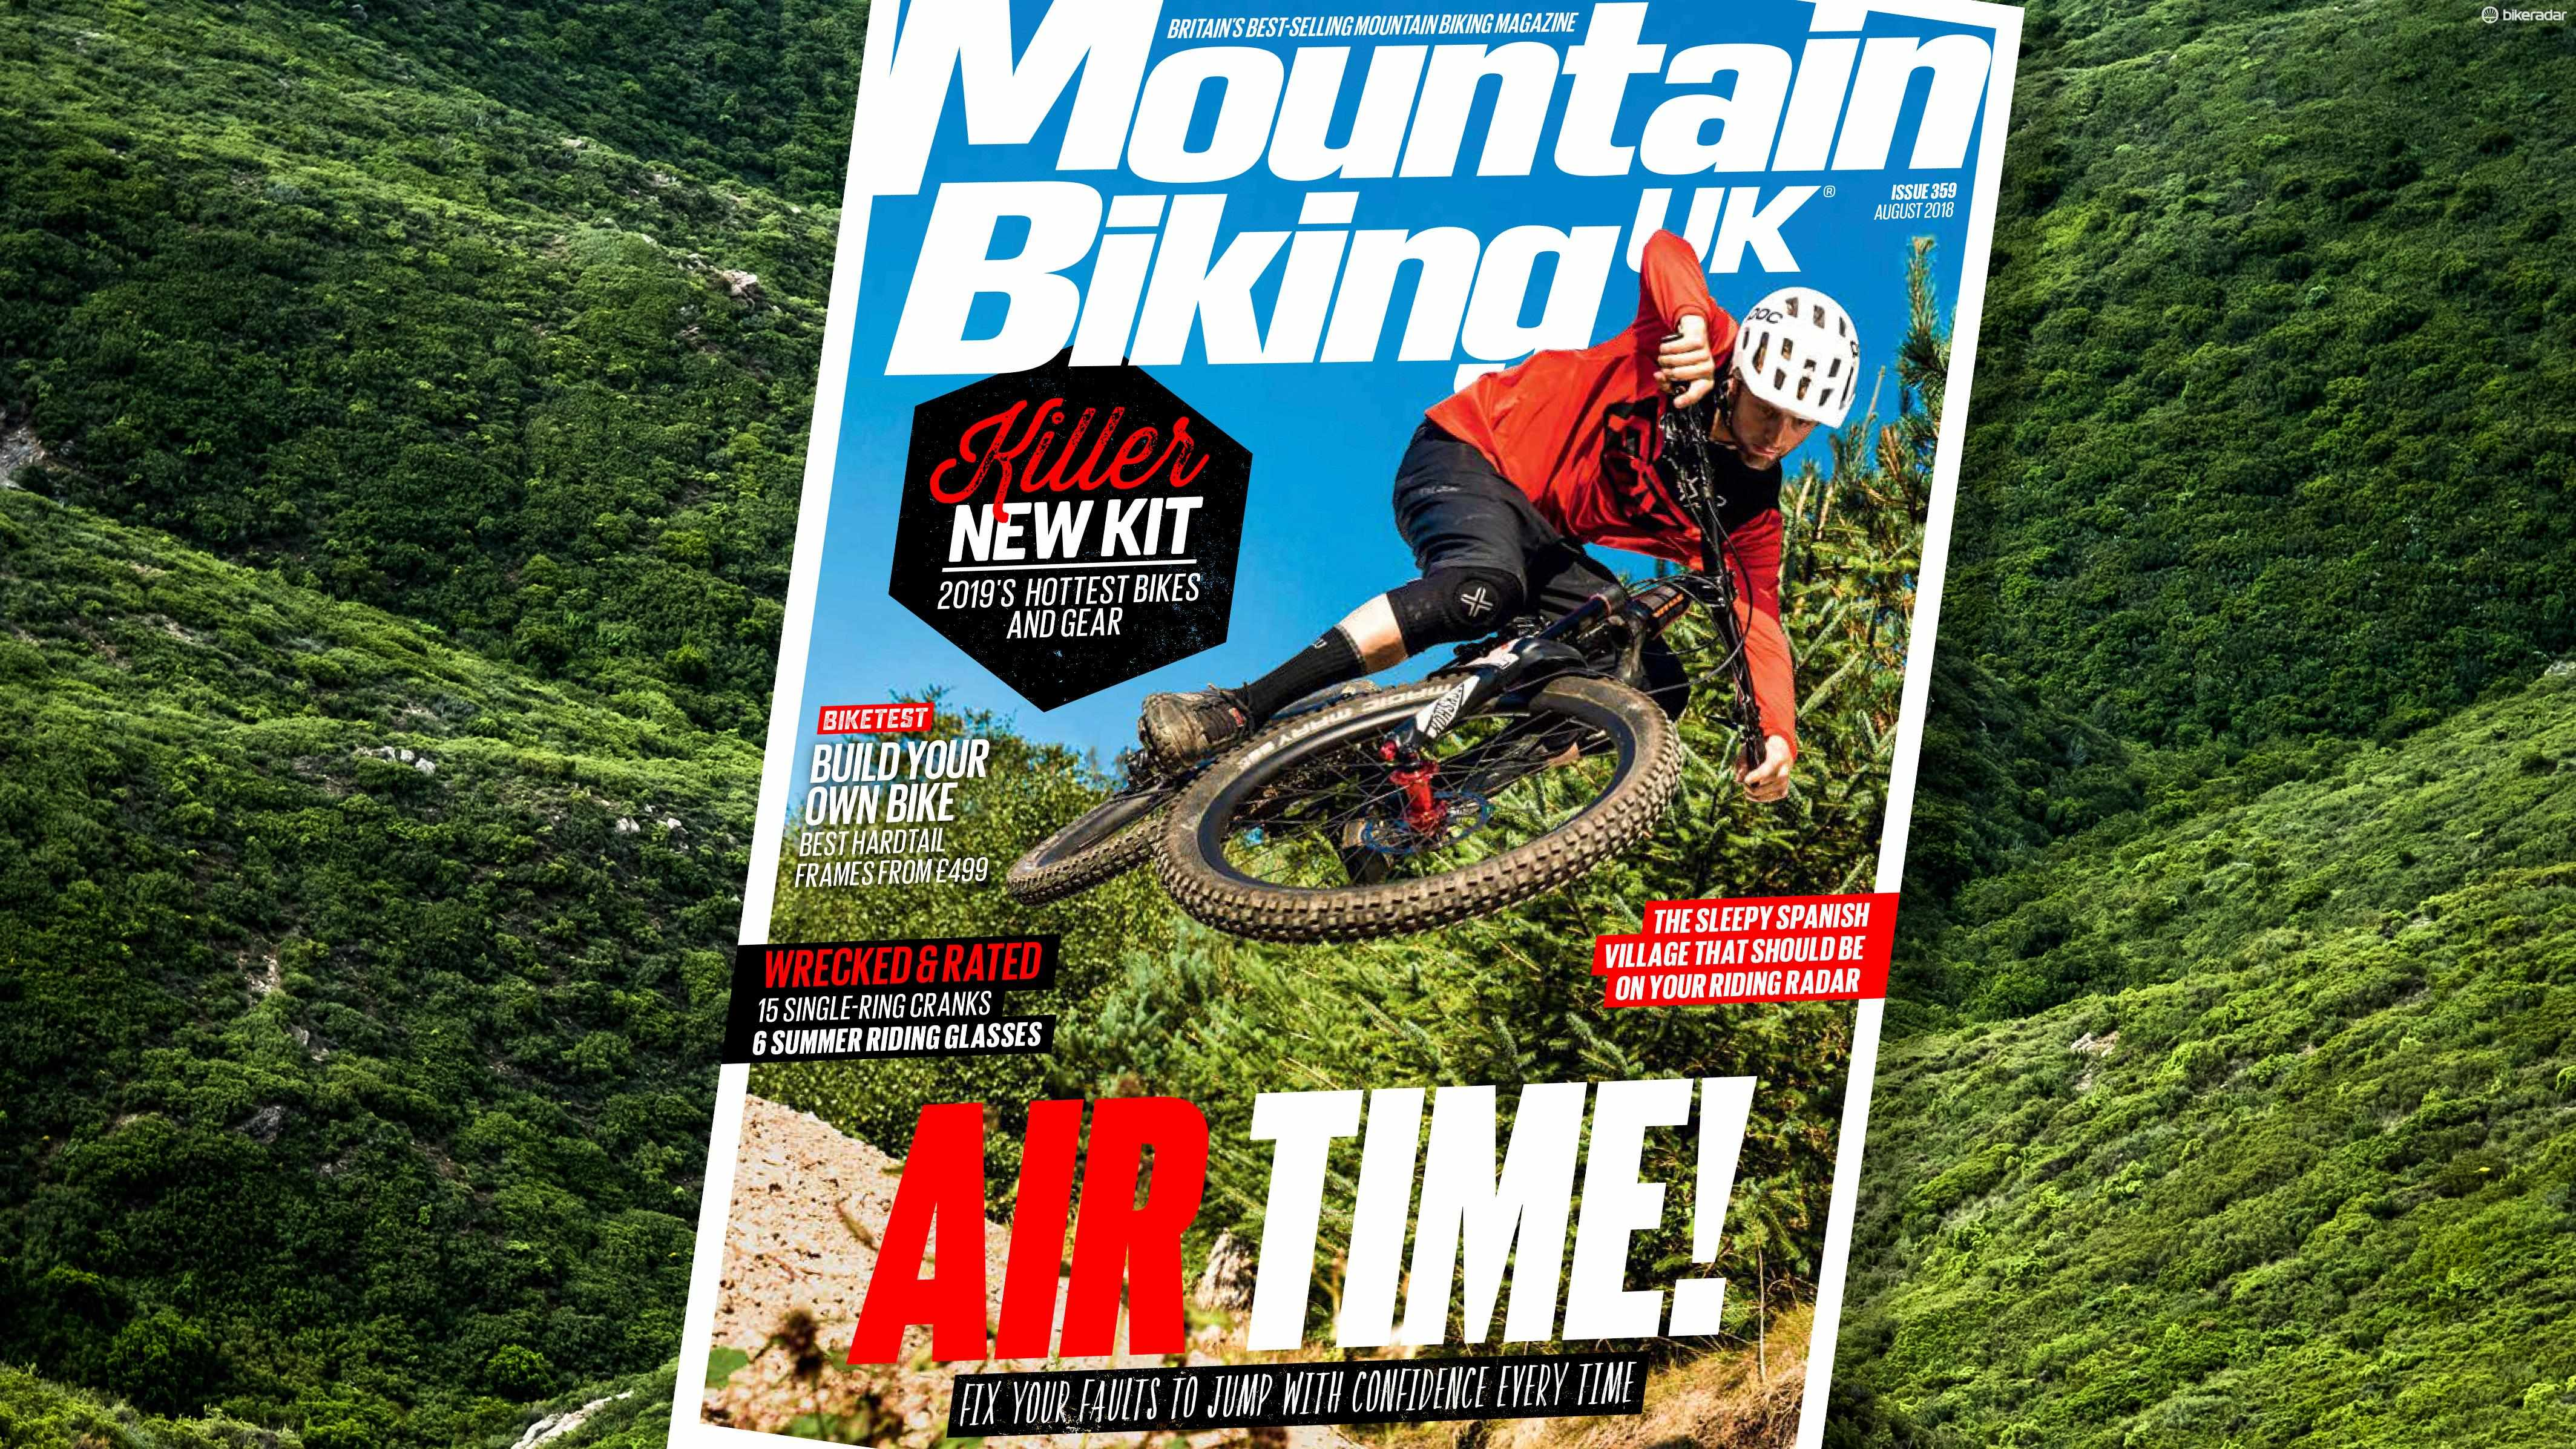 MBUK issue 359 is out now!